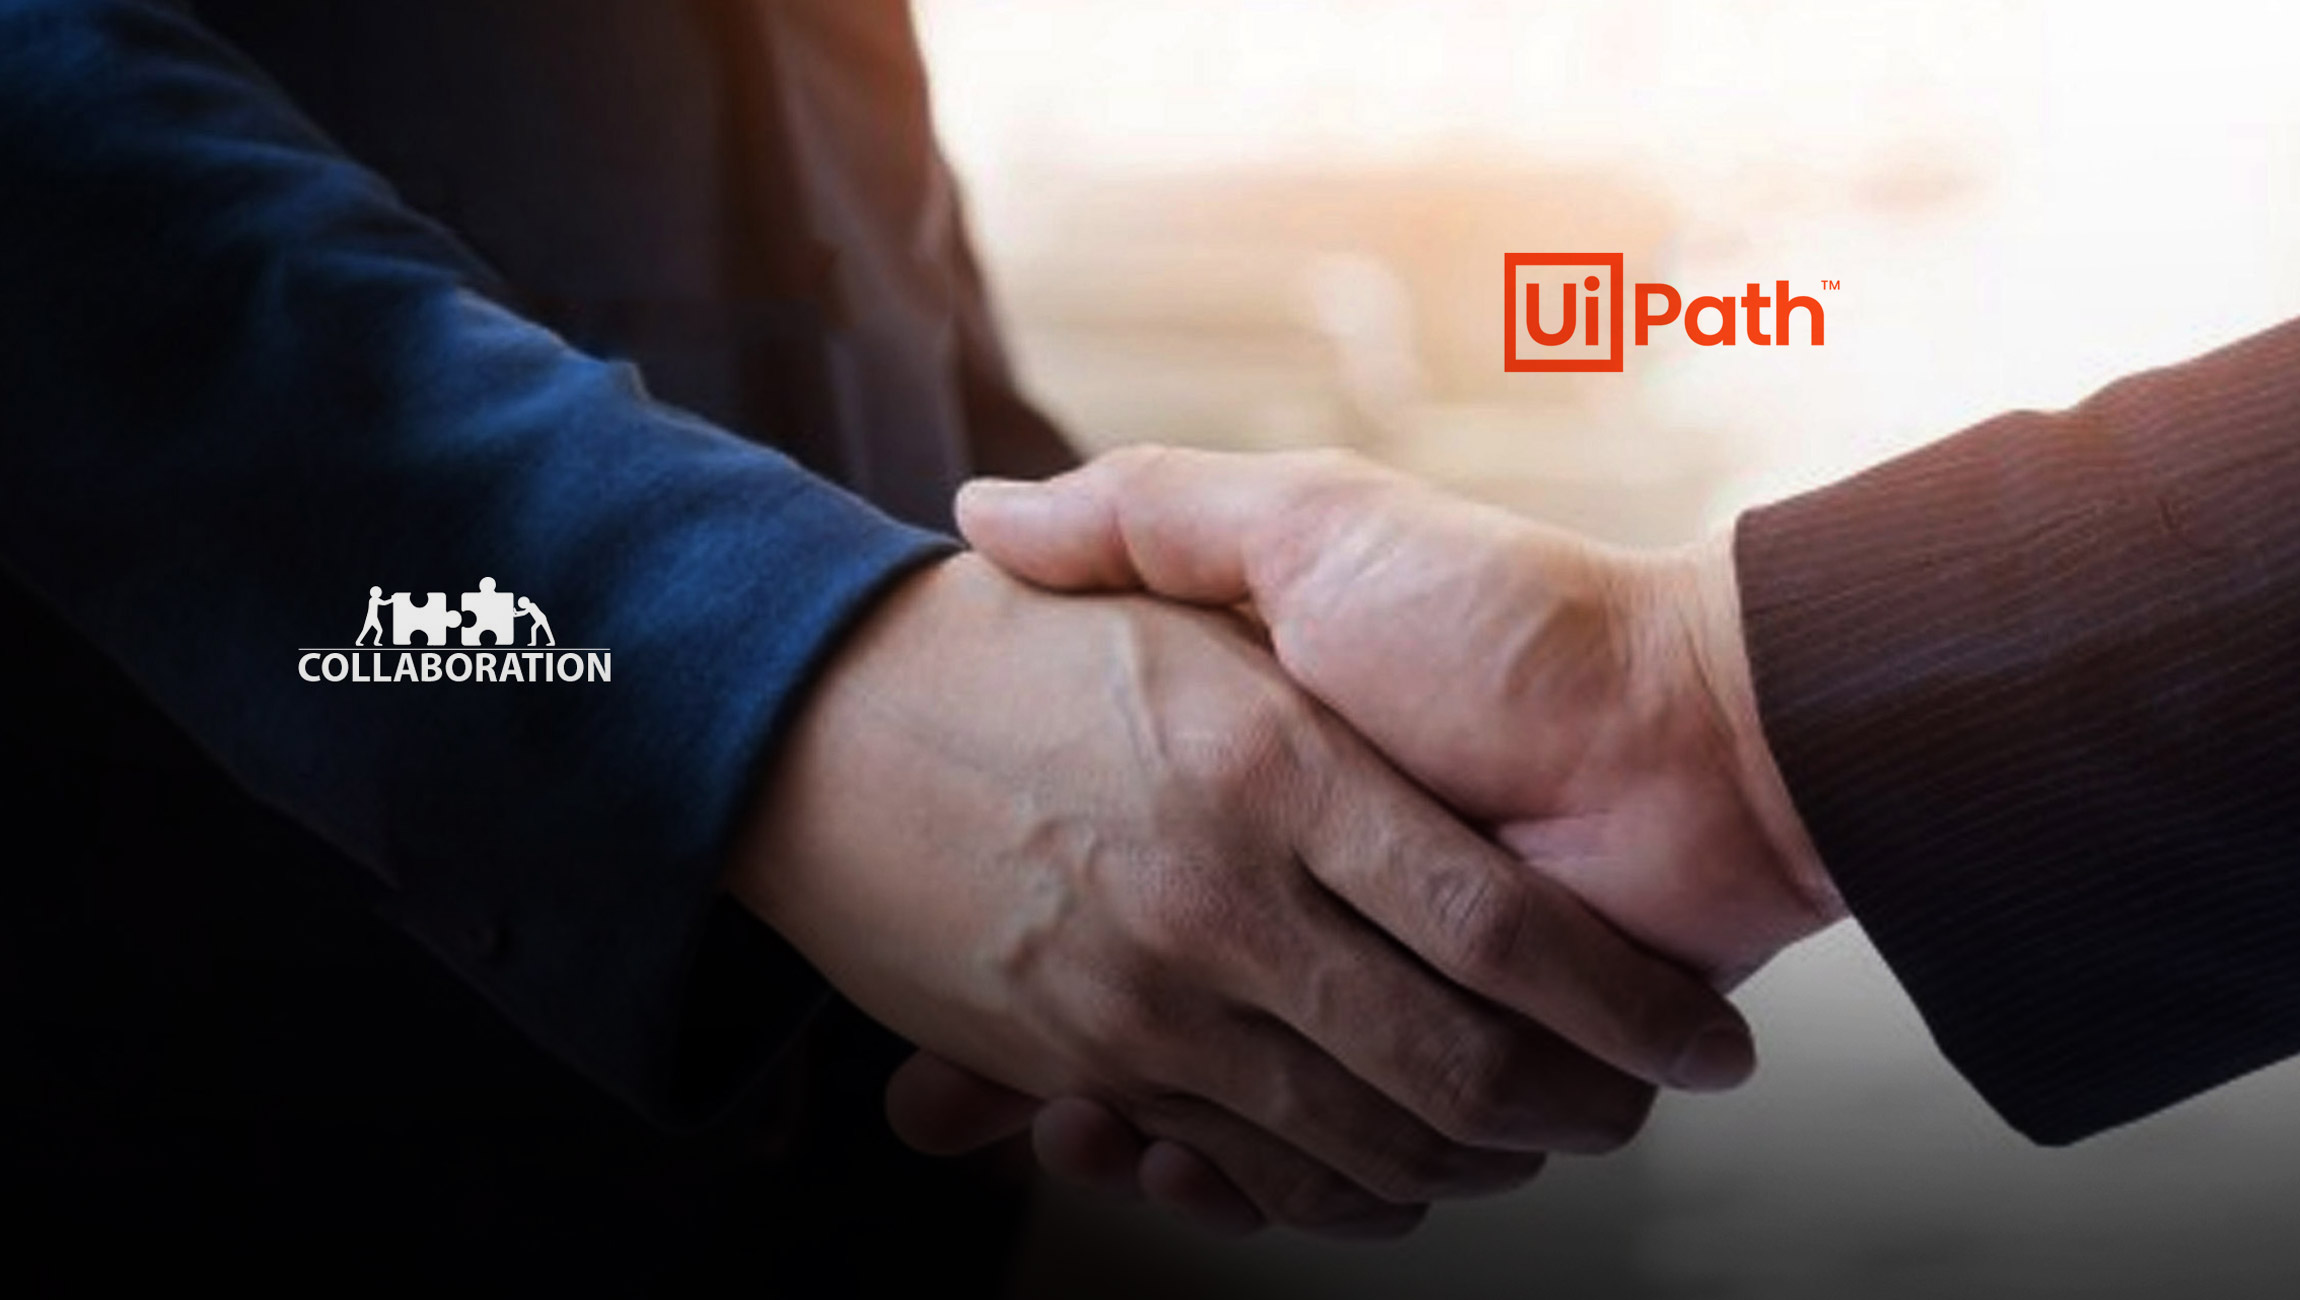 UiPath Expands Support for Business Partners to Deliver on Hyperautomation